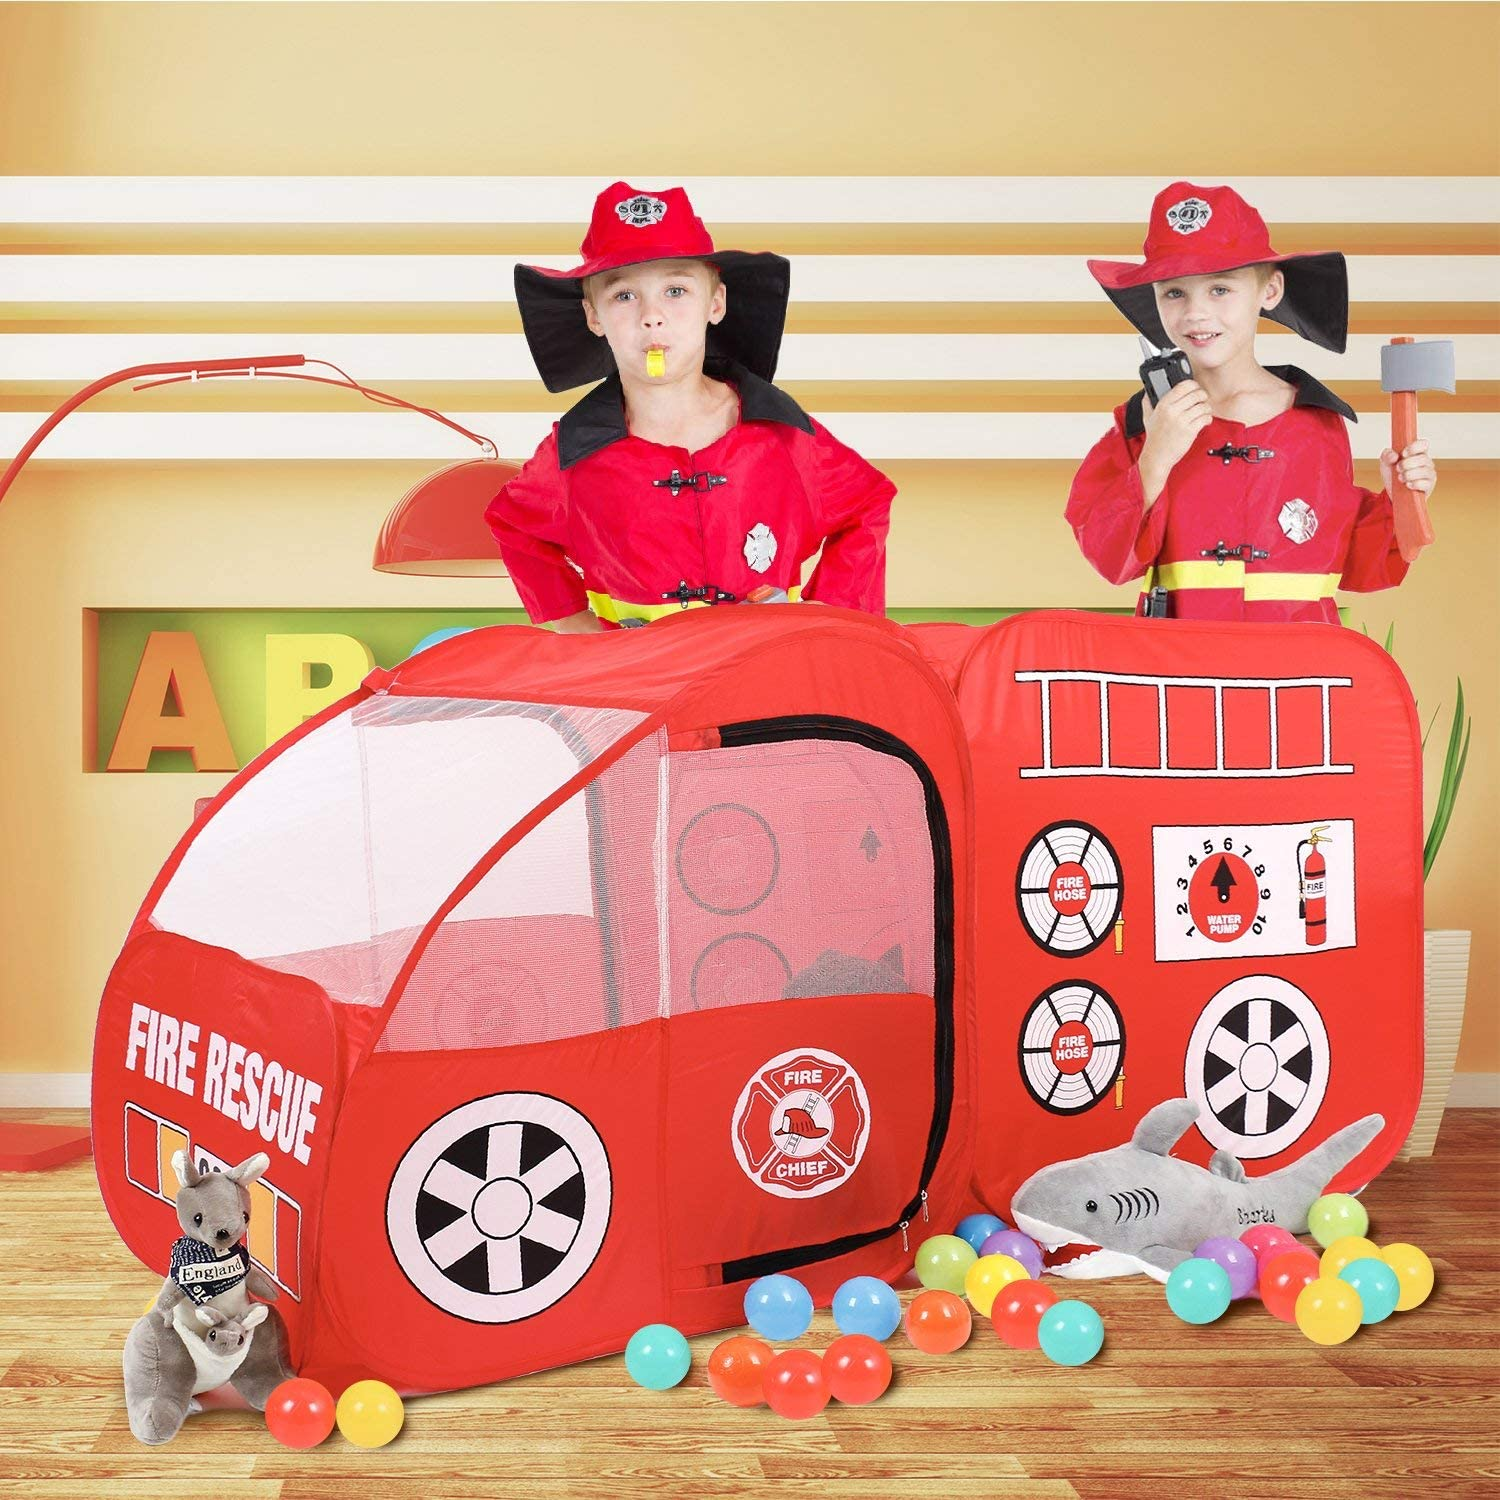 Airfun Fire Truck Kids Play Tent, Kids Room Decor Playhouse Indoor Outdoor Pop Up Play Tent Pretend Vehicle for Boys Girls